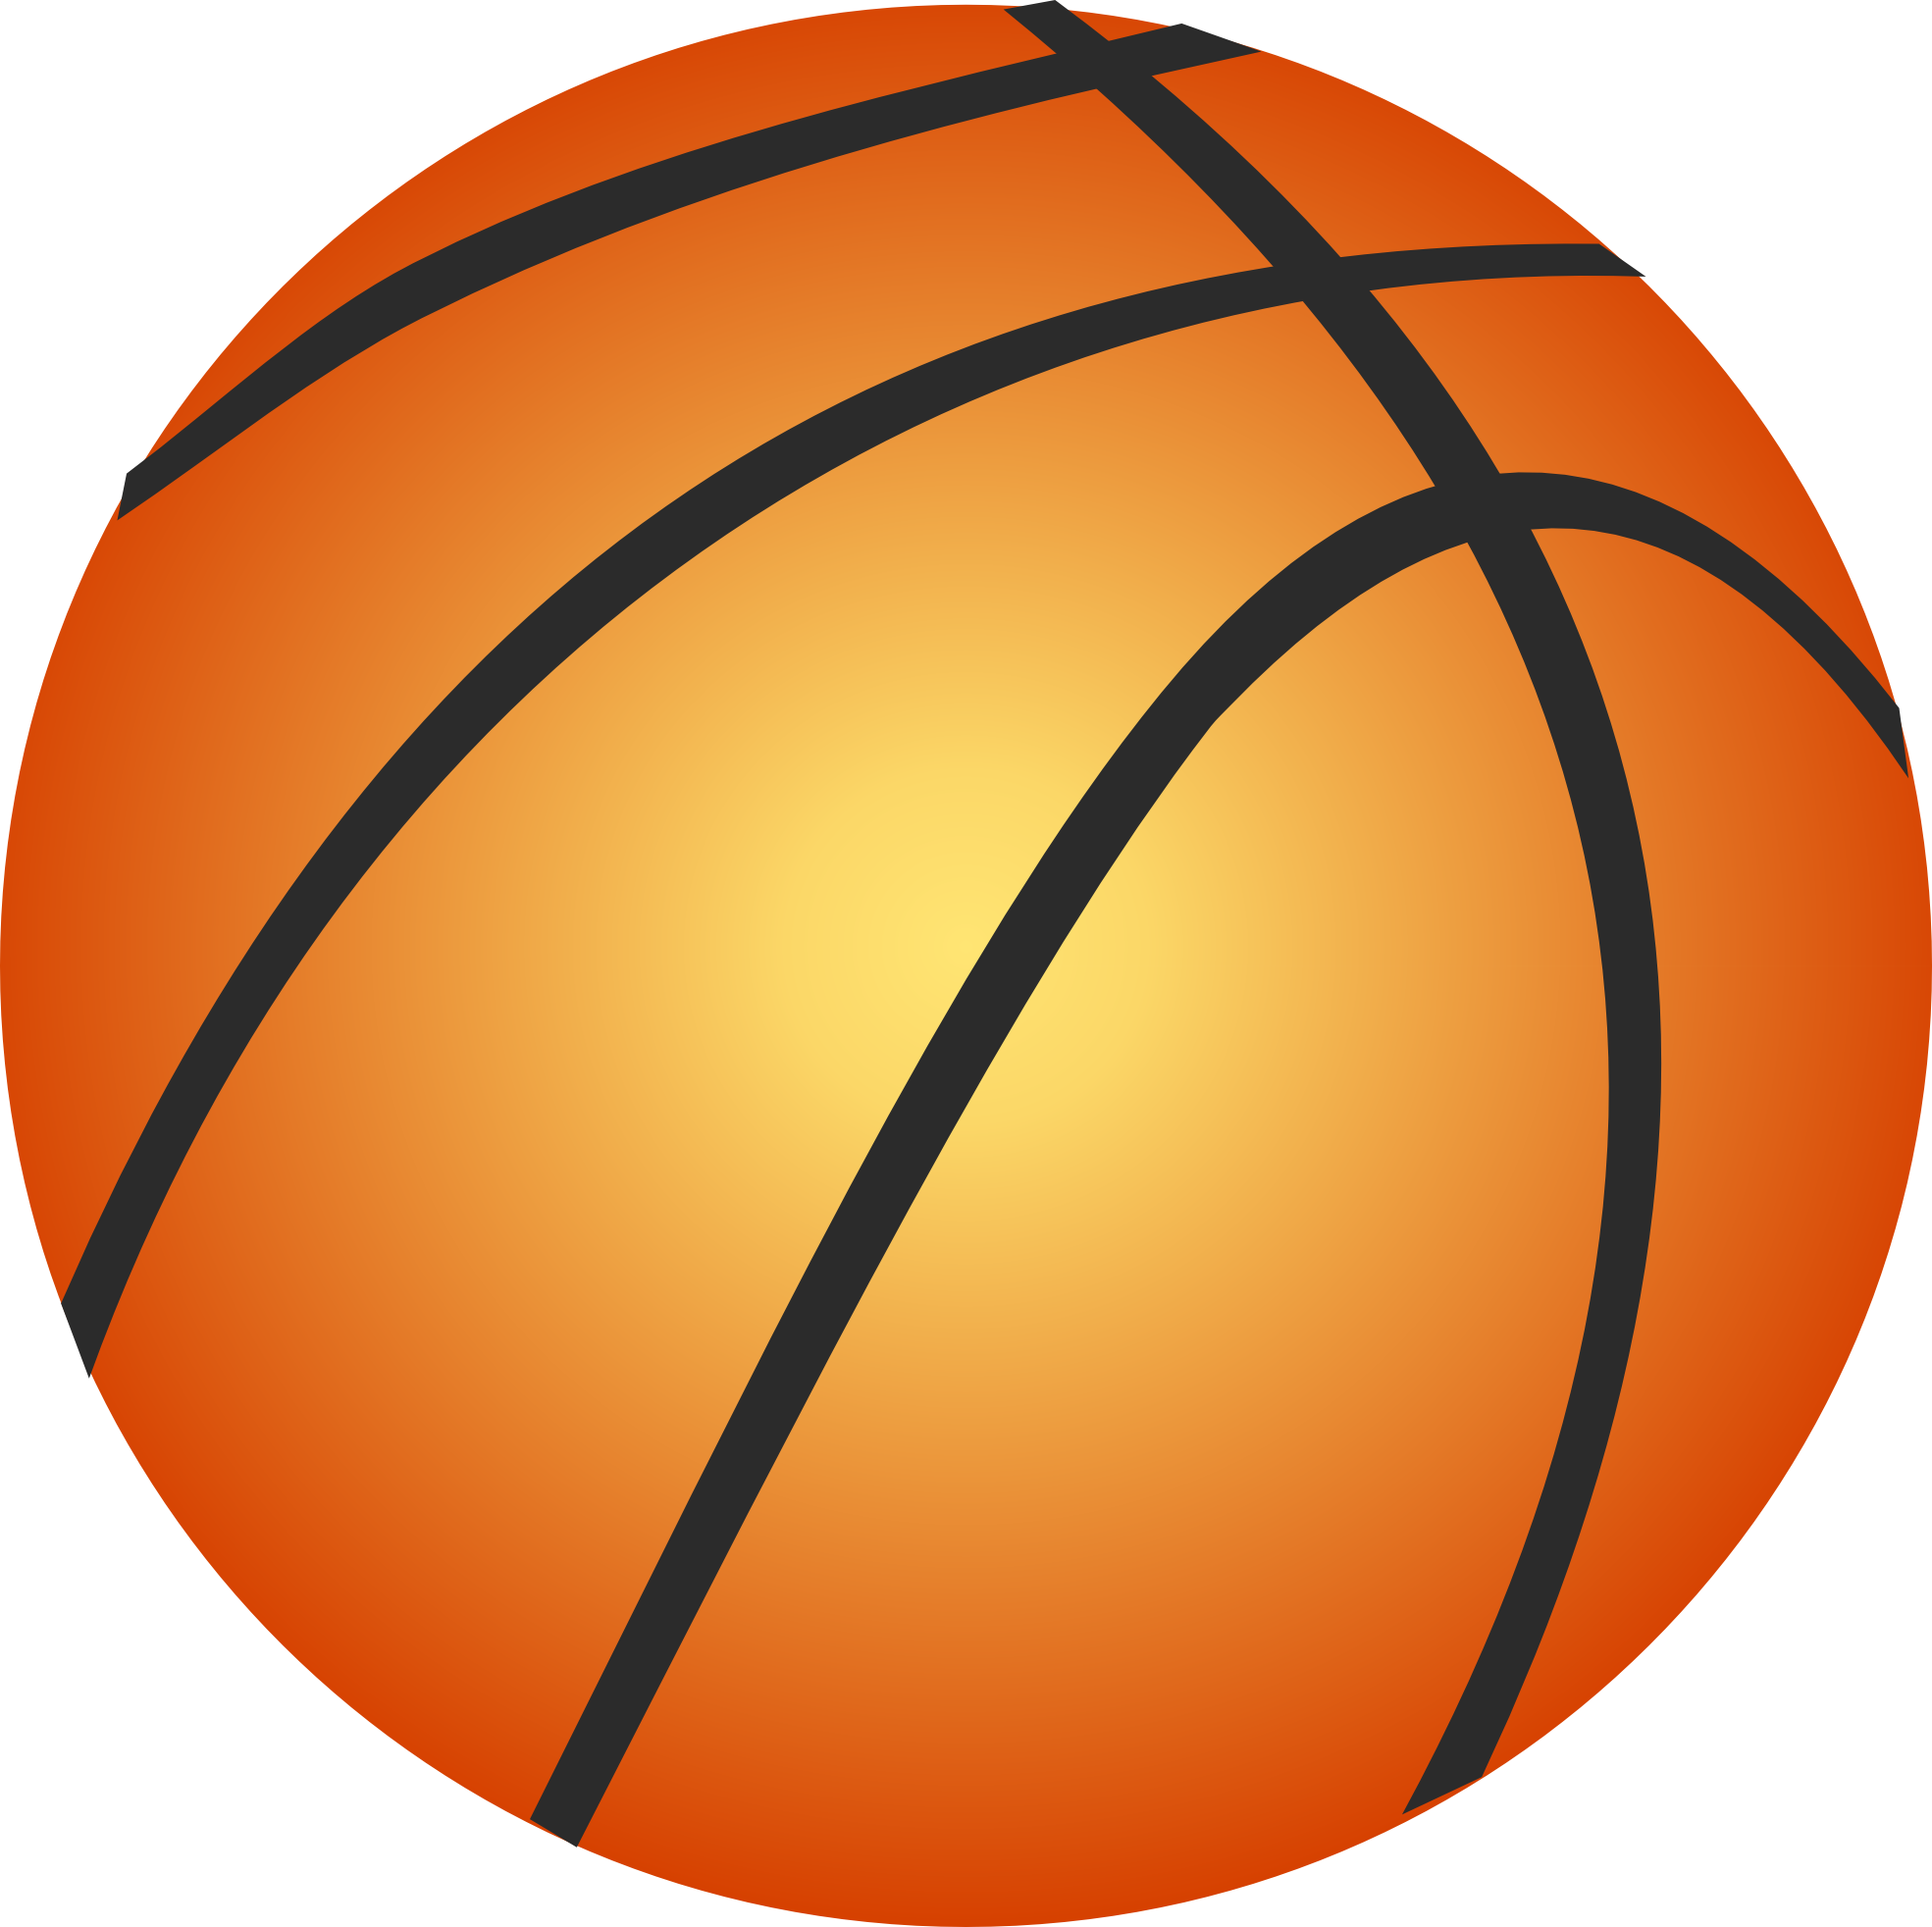 Purple clipart basketball. Capped pencil and in